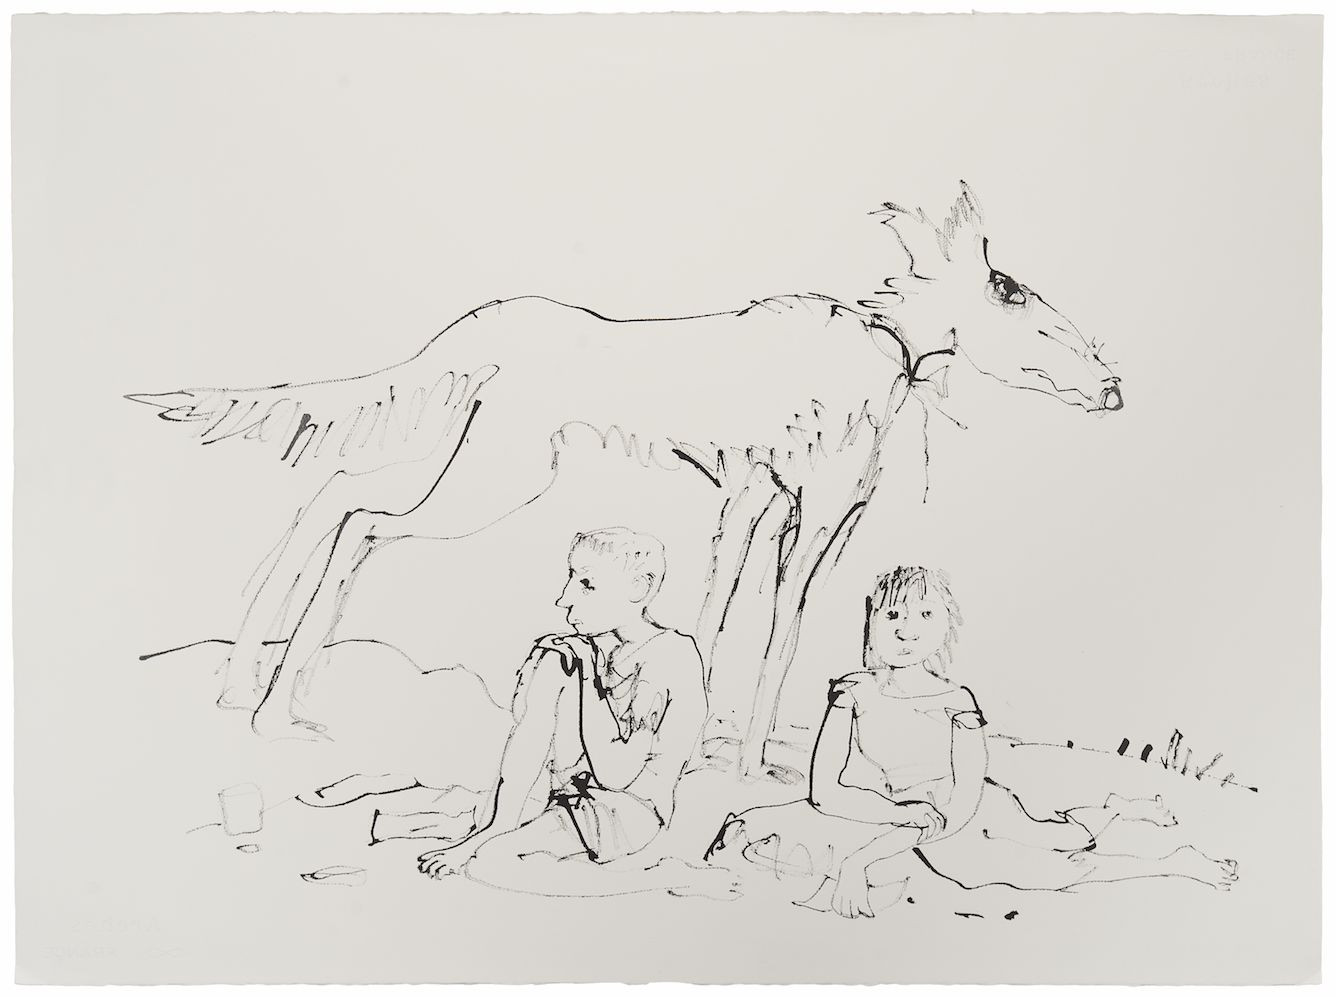 Quentin Blake: Gifted